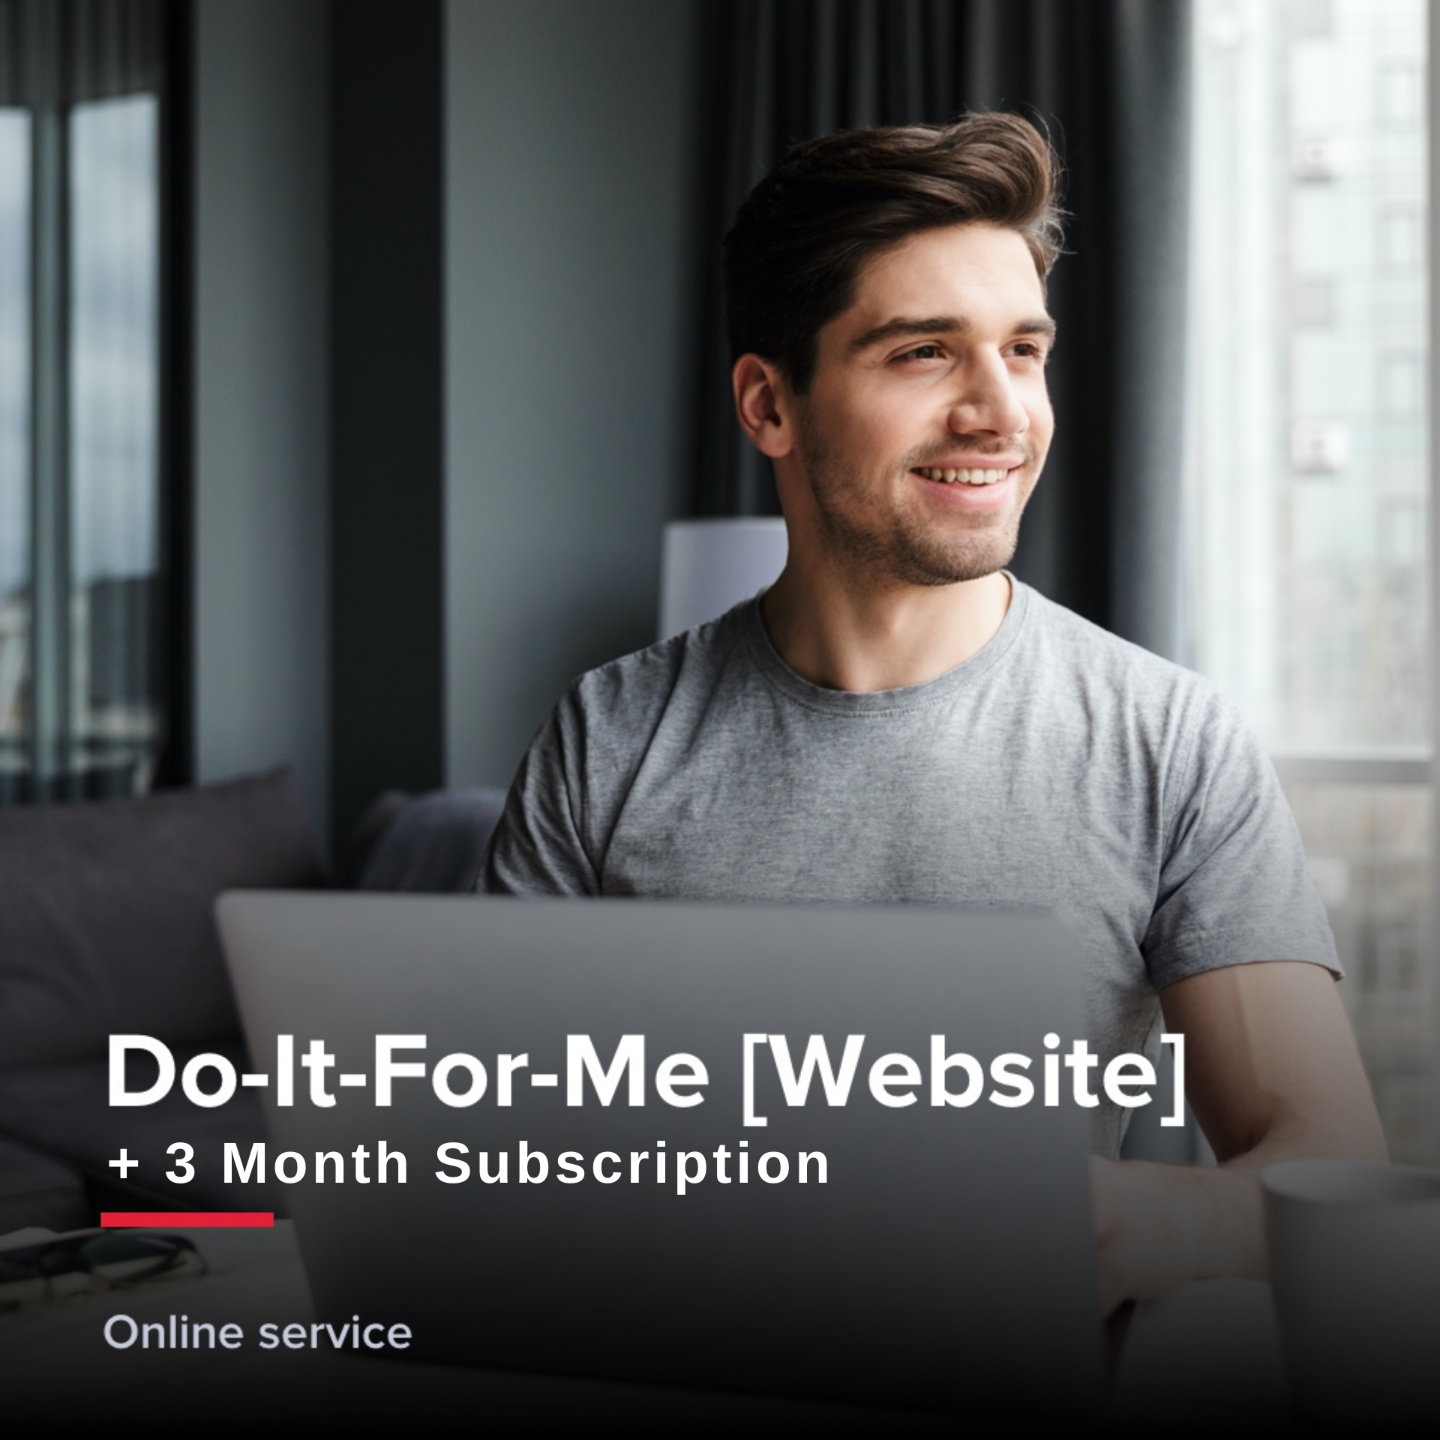 Do-It-For-Me Website +3 month subscription